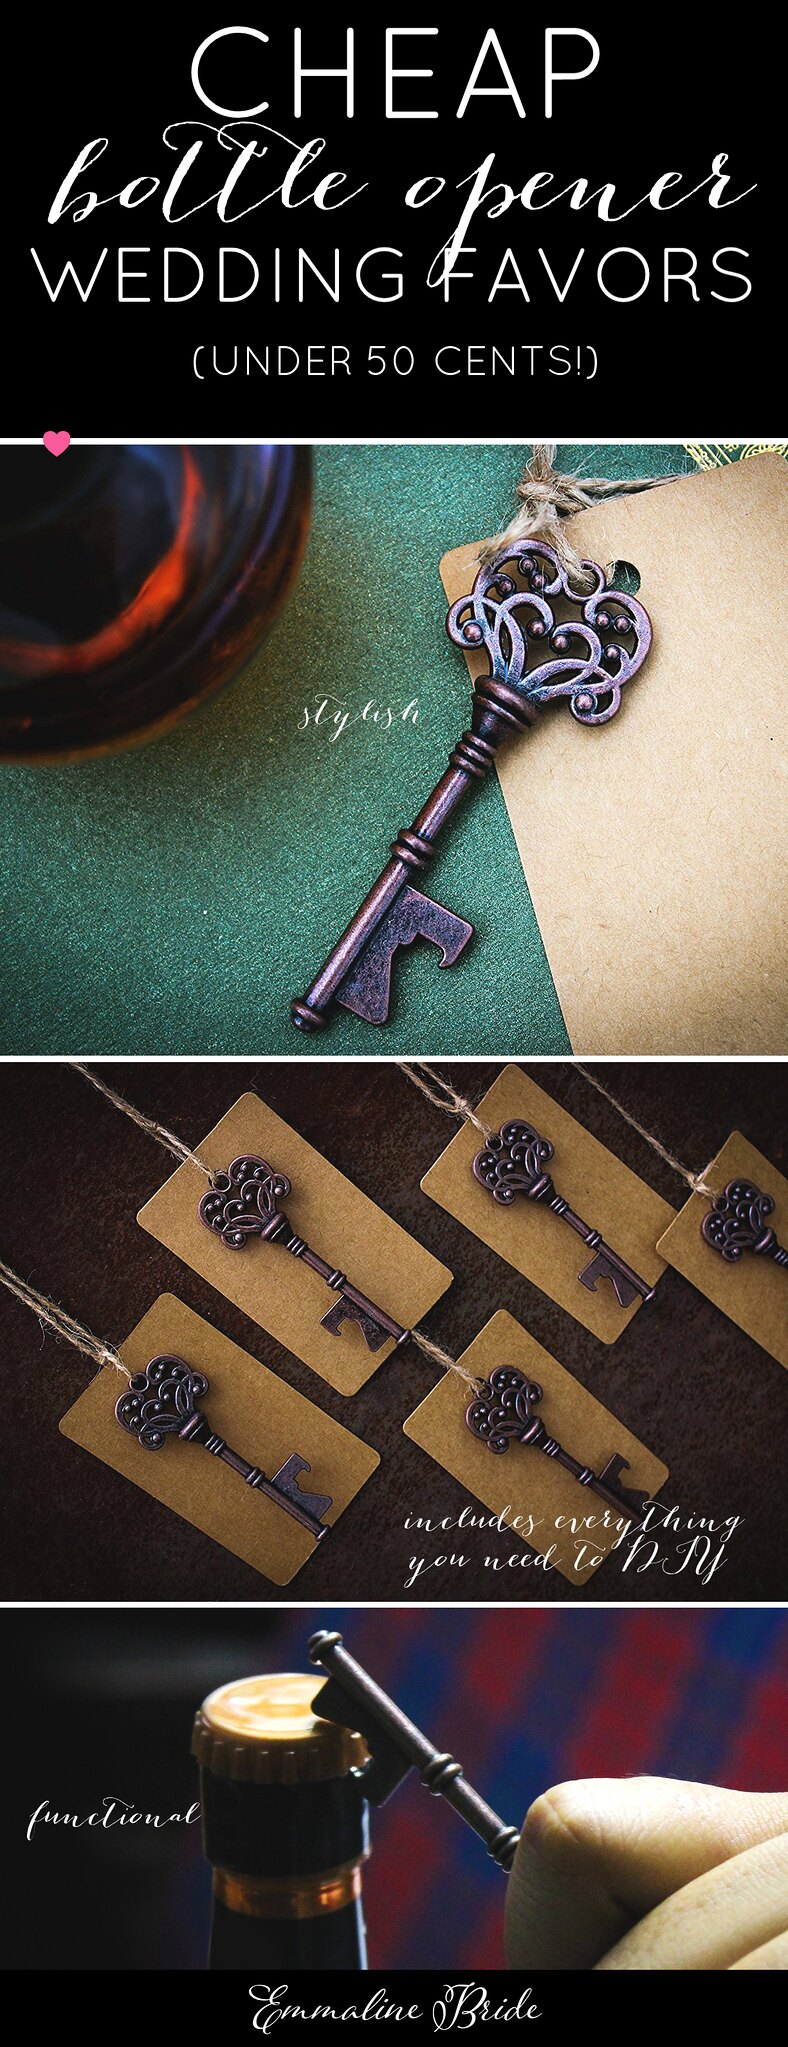 cheap wedding favors - bottle openers